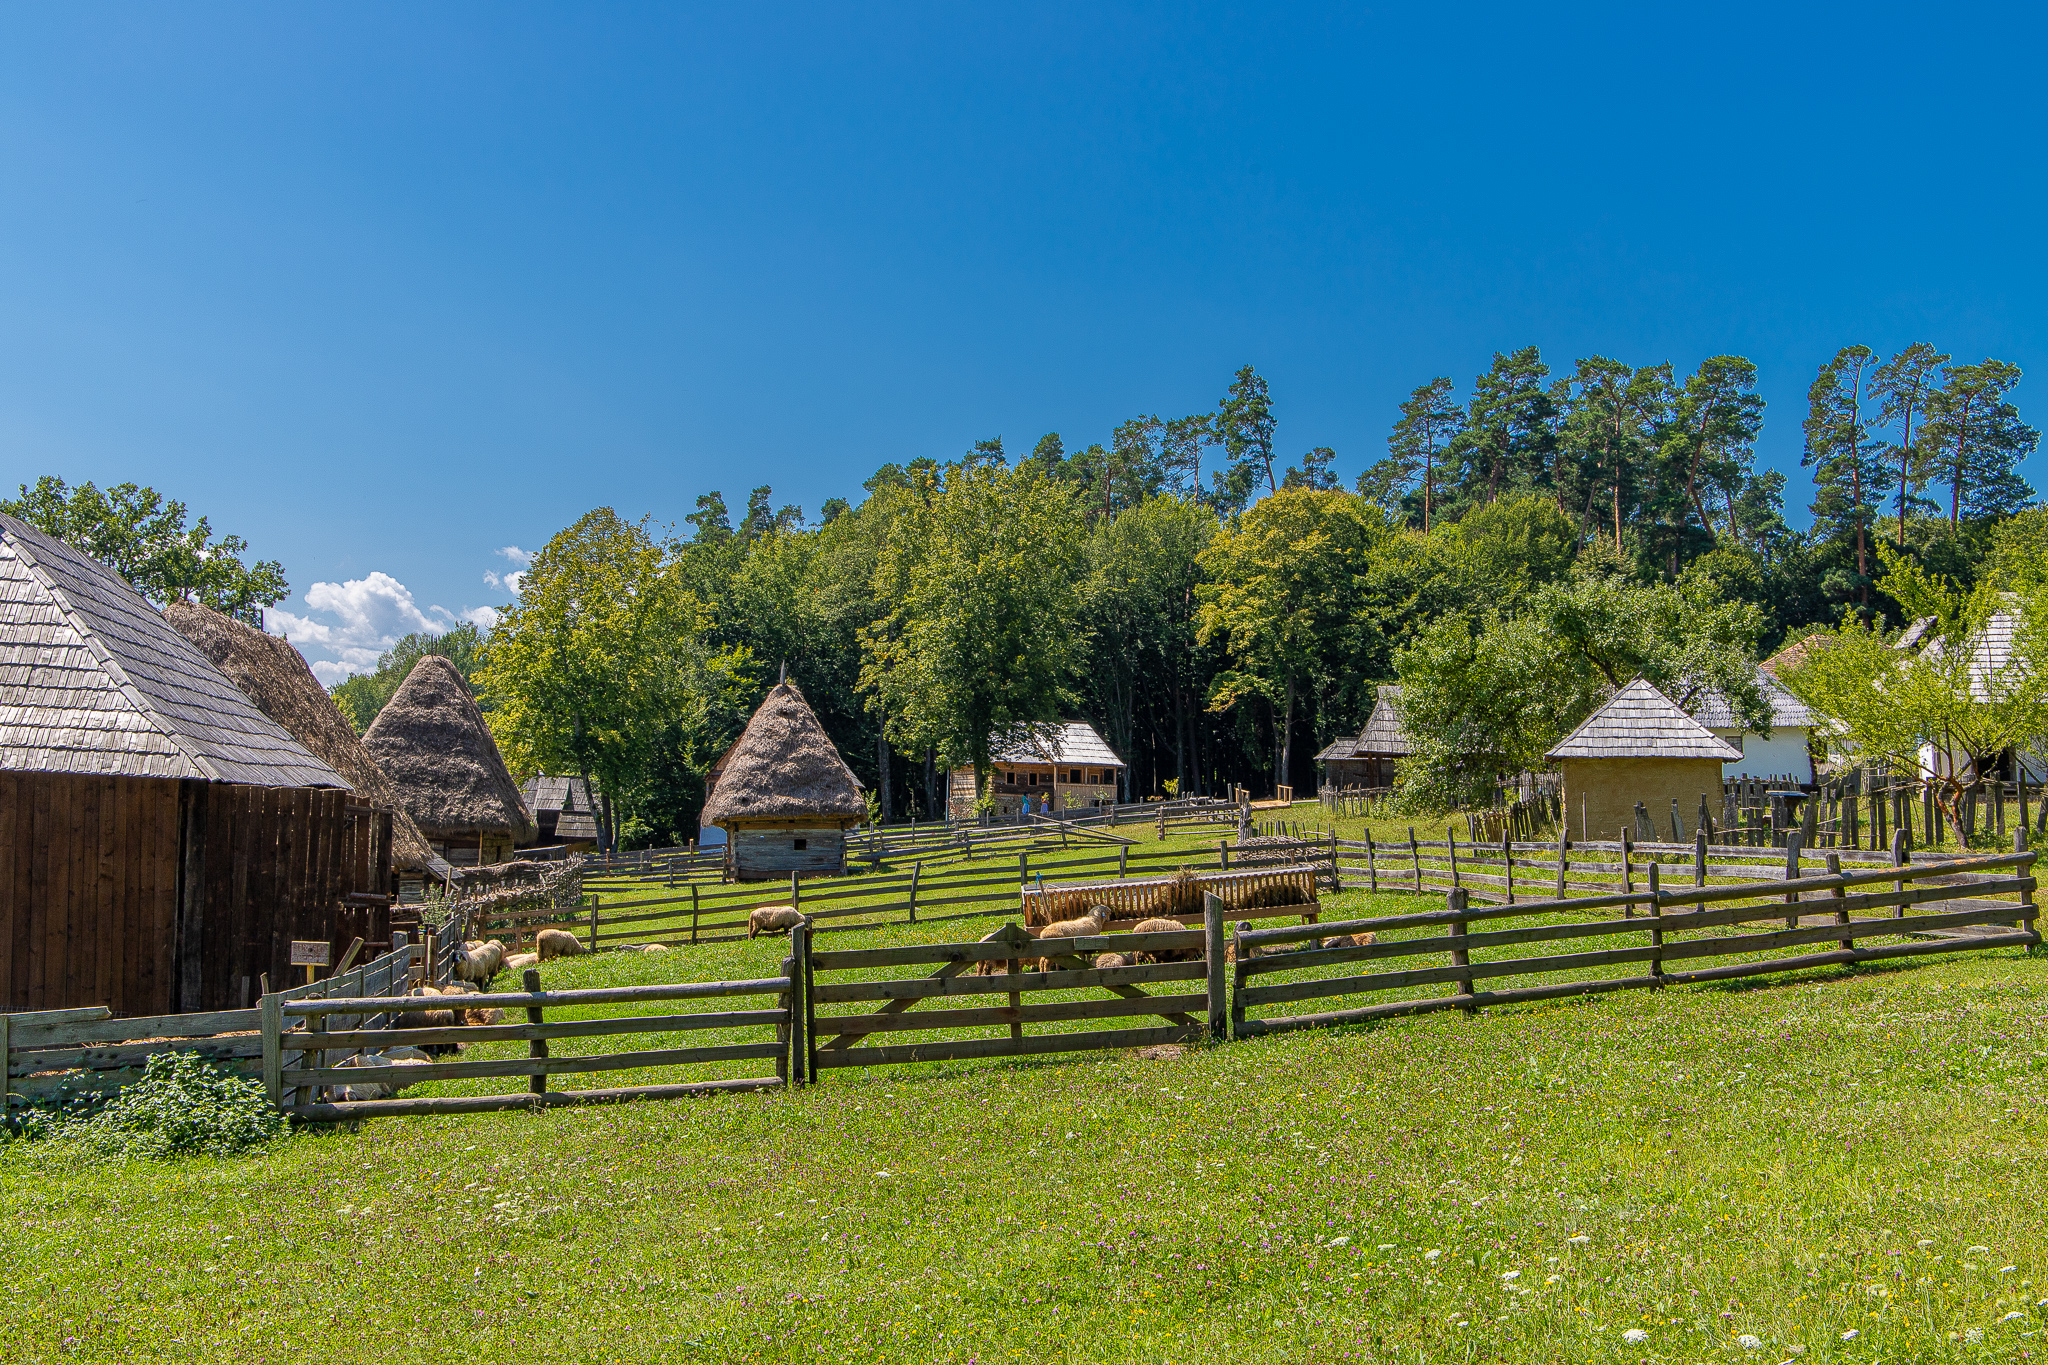 A typical Romanian countryside scene